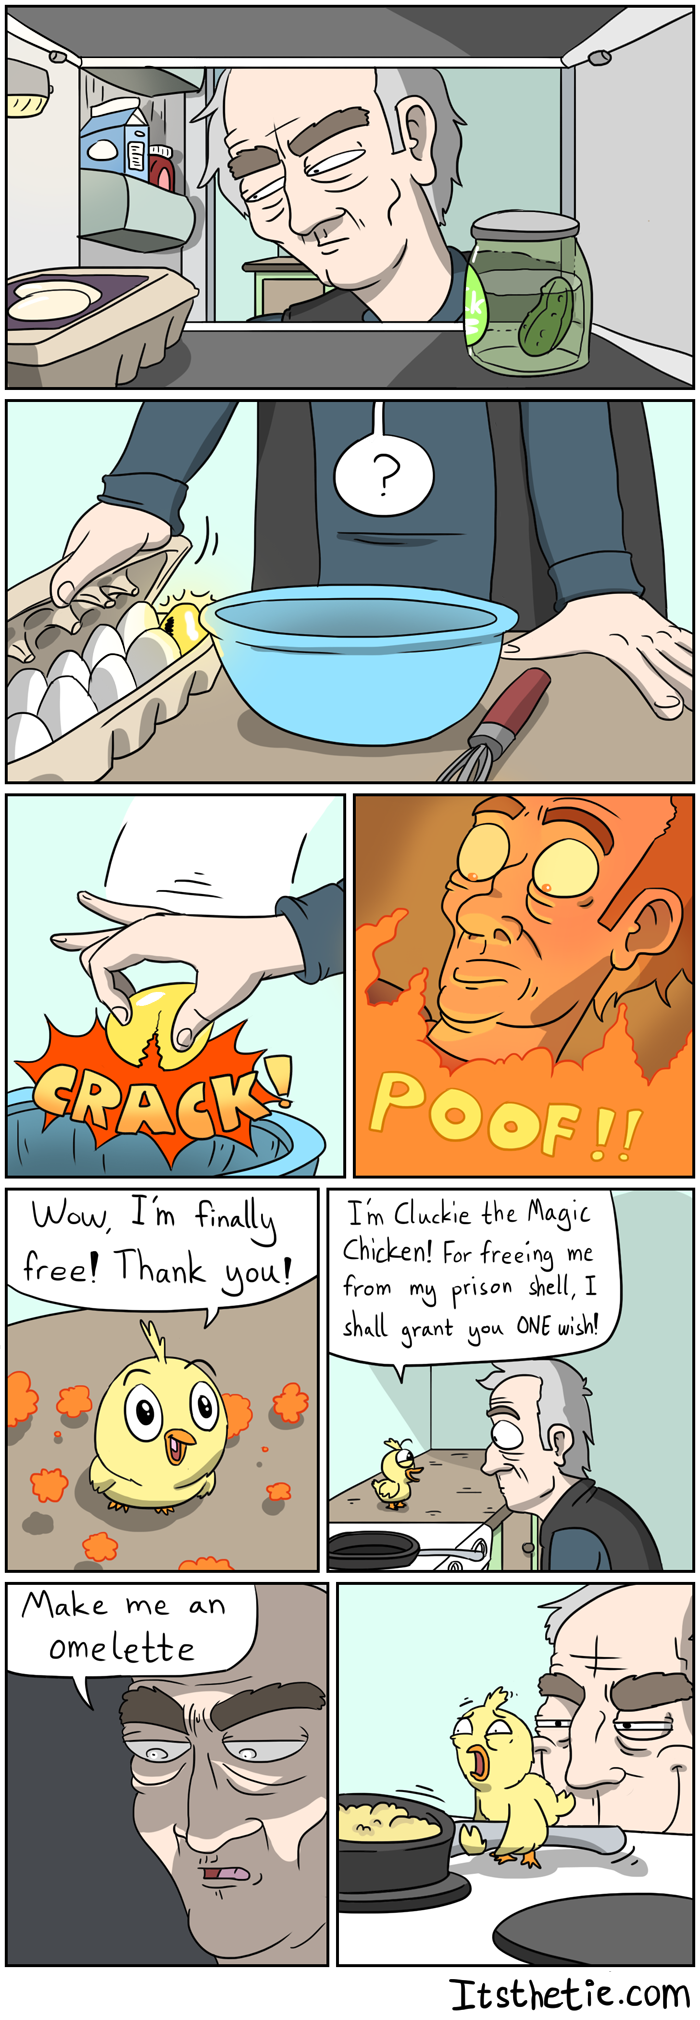 Cluckie the Magic Chicken